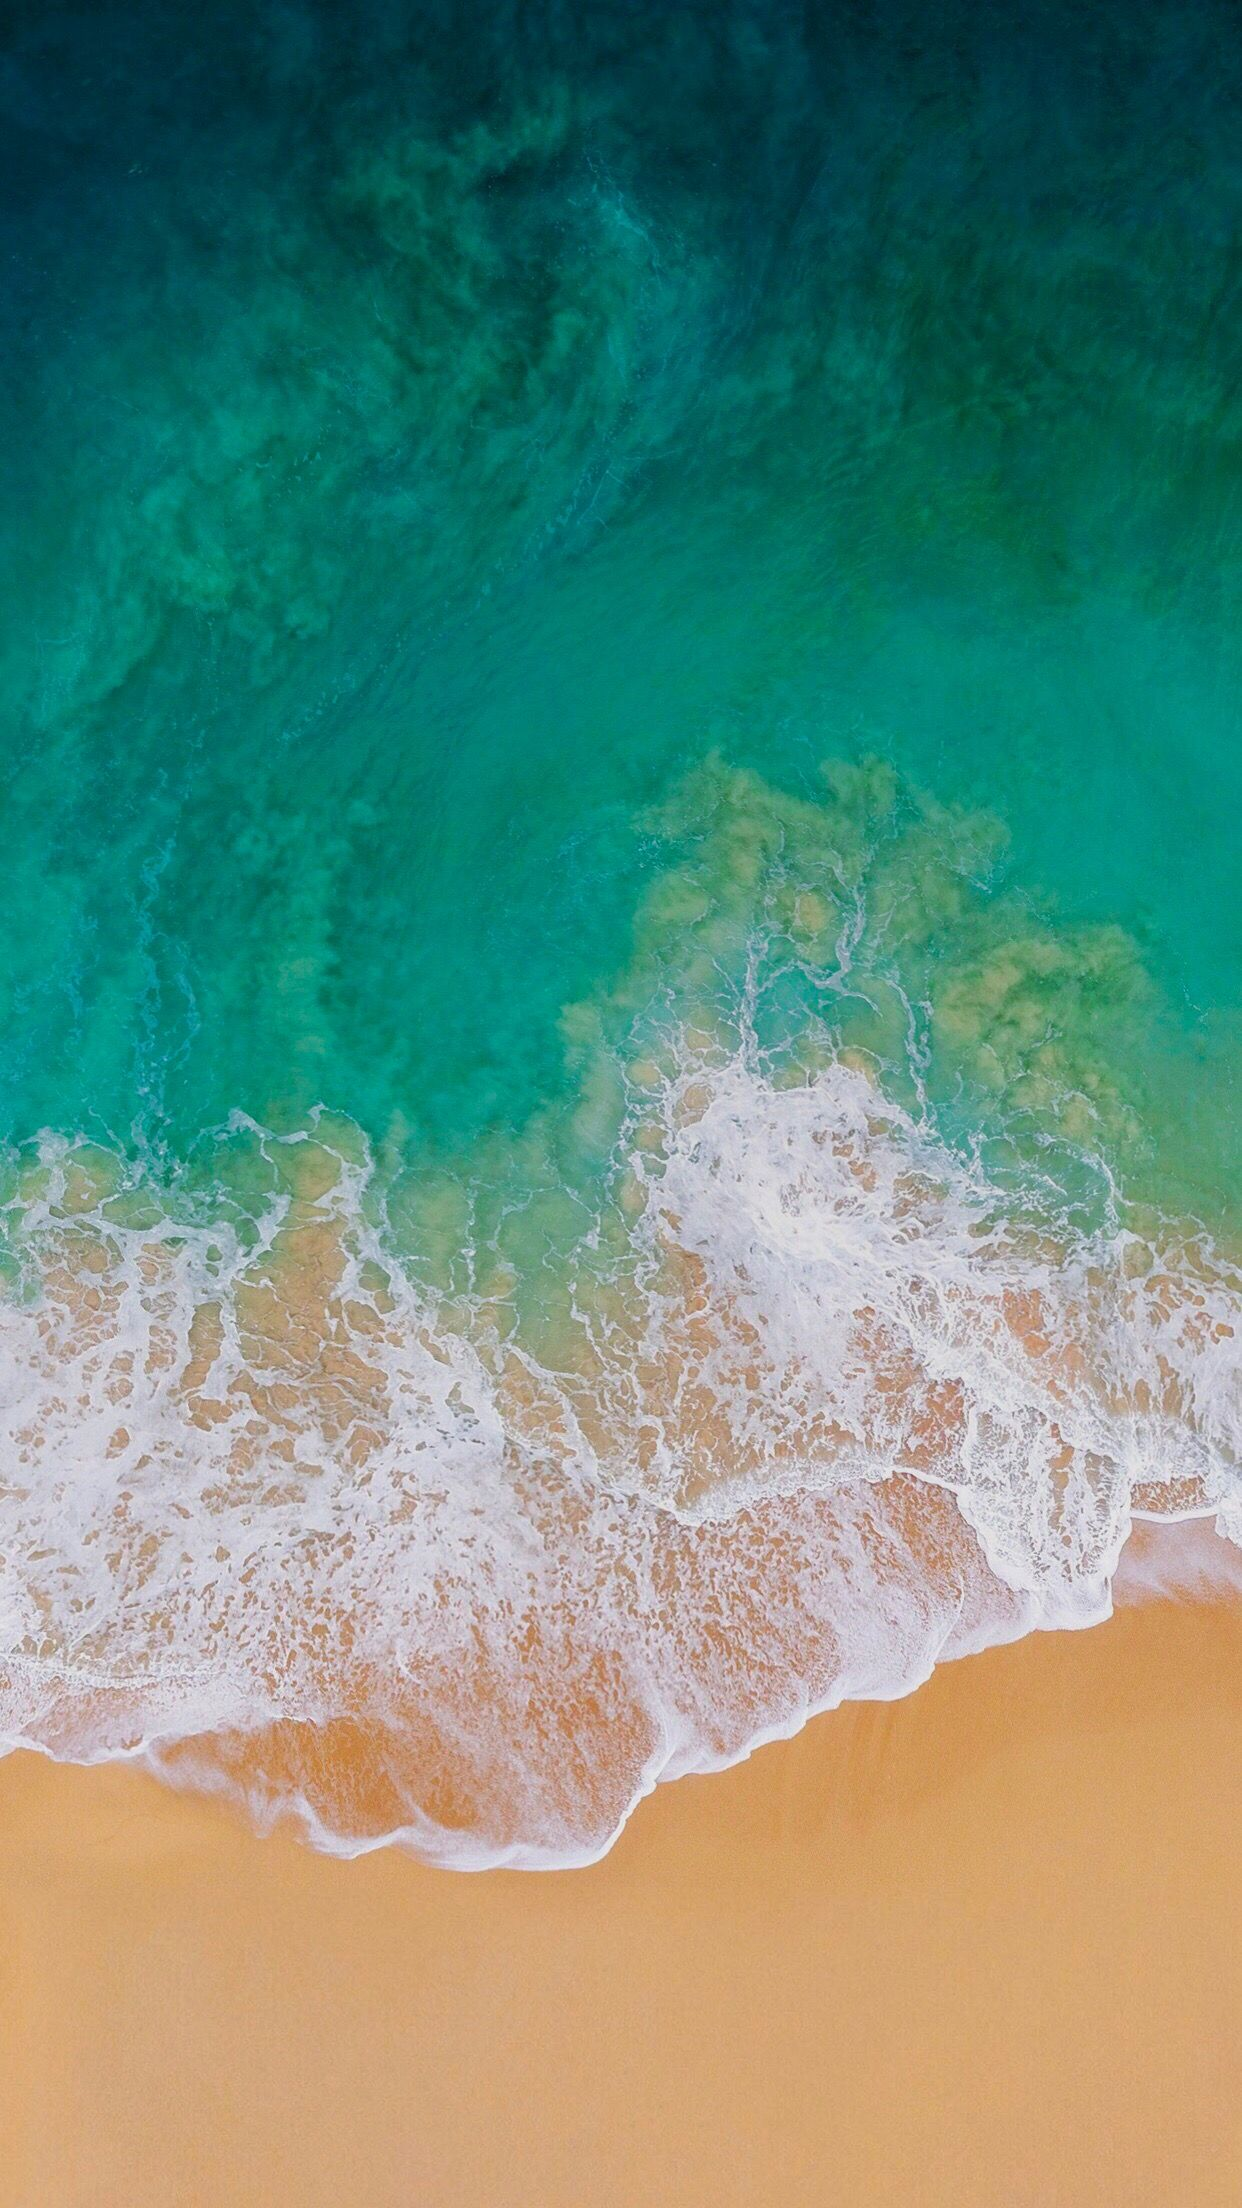 Ios 11 Turquoise Sand Beach Ocean Abstract Apple Wallpaper